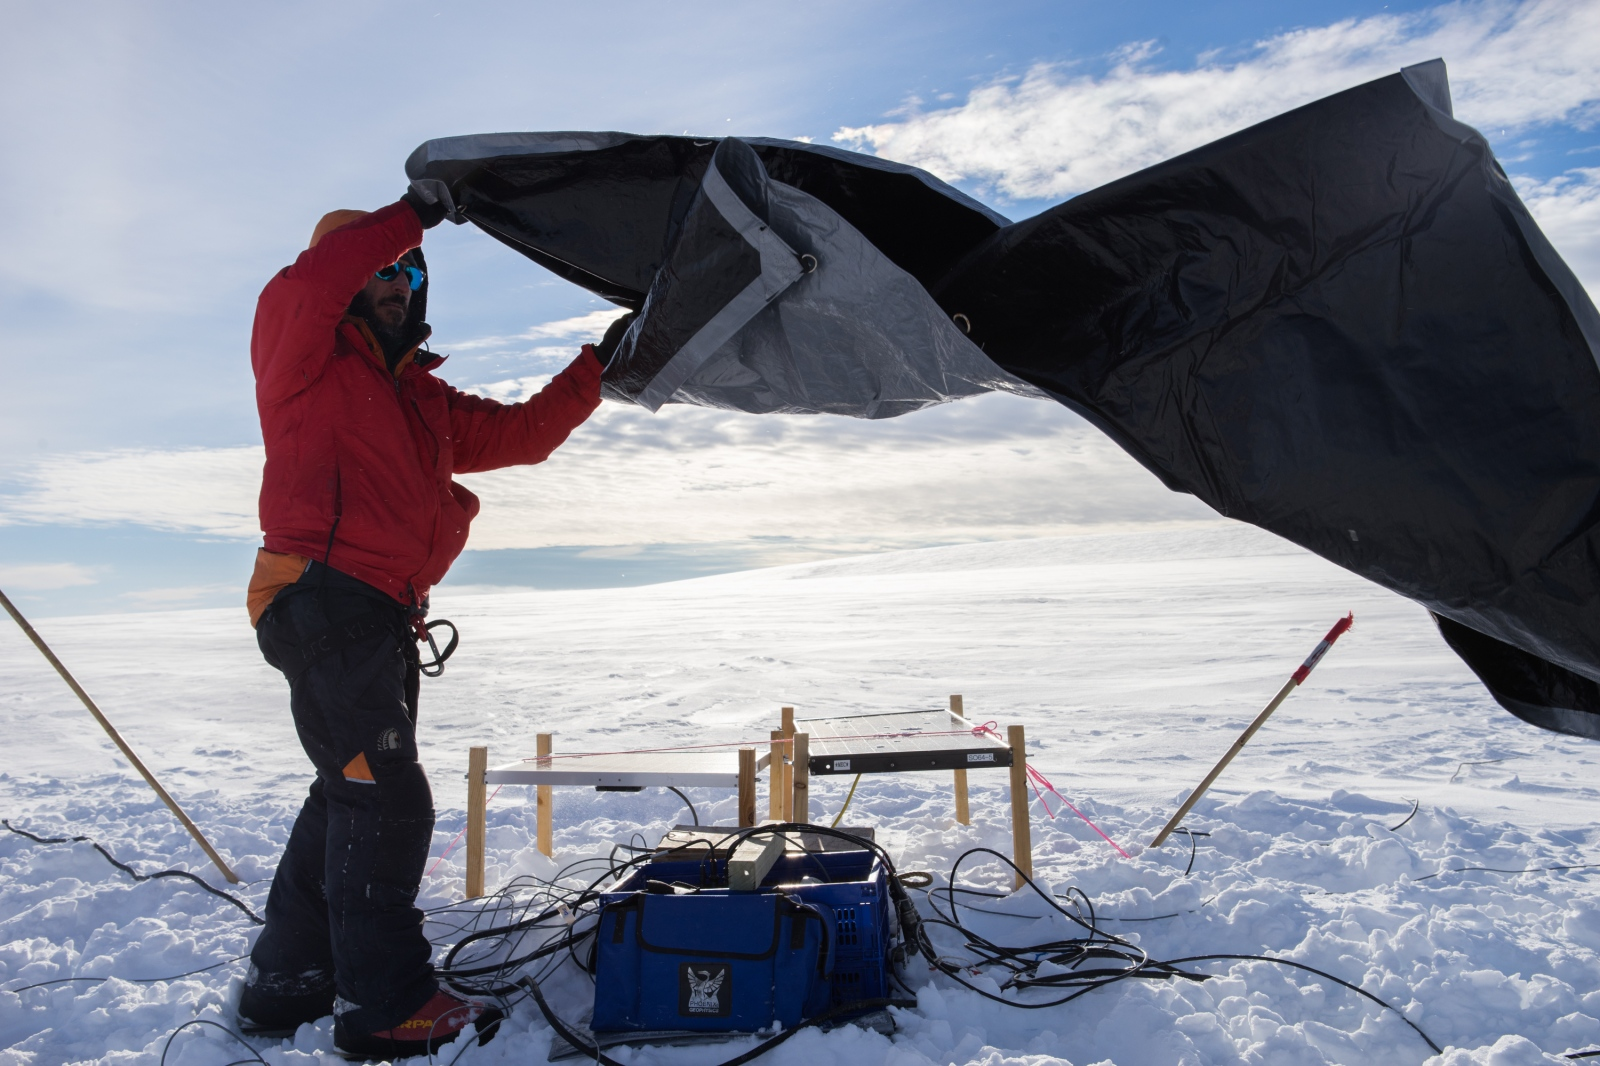 Dr. Paul Bedrosian covers the geophysics equipment before leaving it to sit on the glacier and collect data over a one-week period.